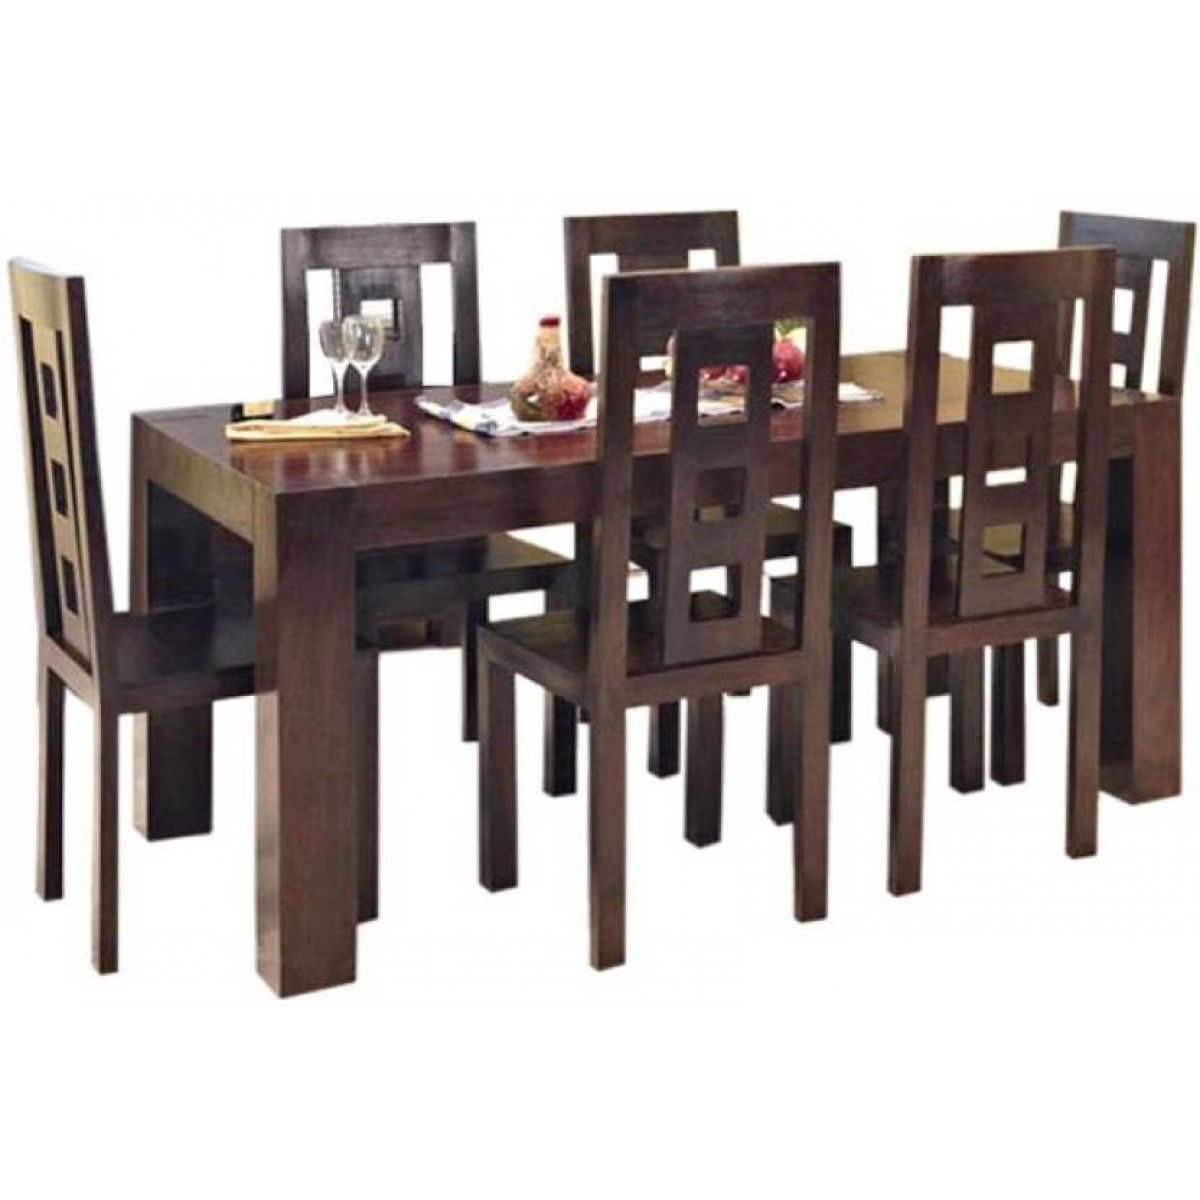 Gorevizon Walnut Rosewood Dining Table Set 6 Seater Set Wooden